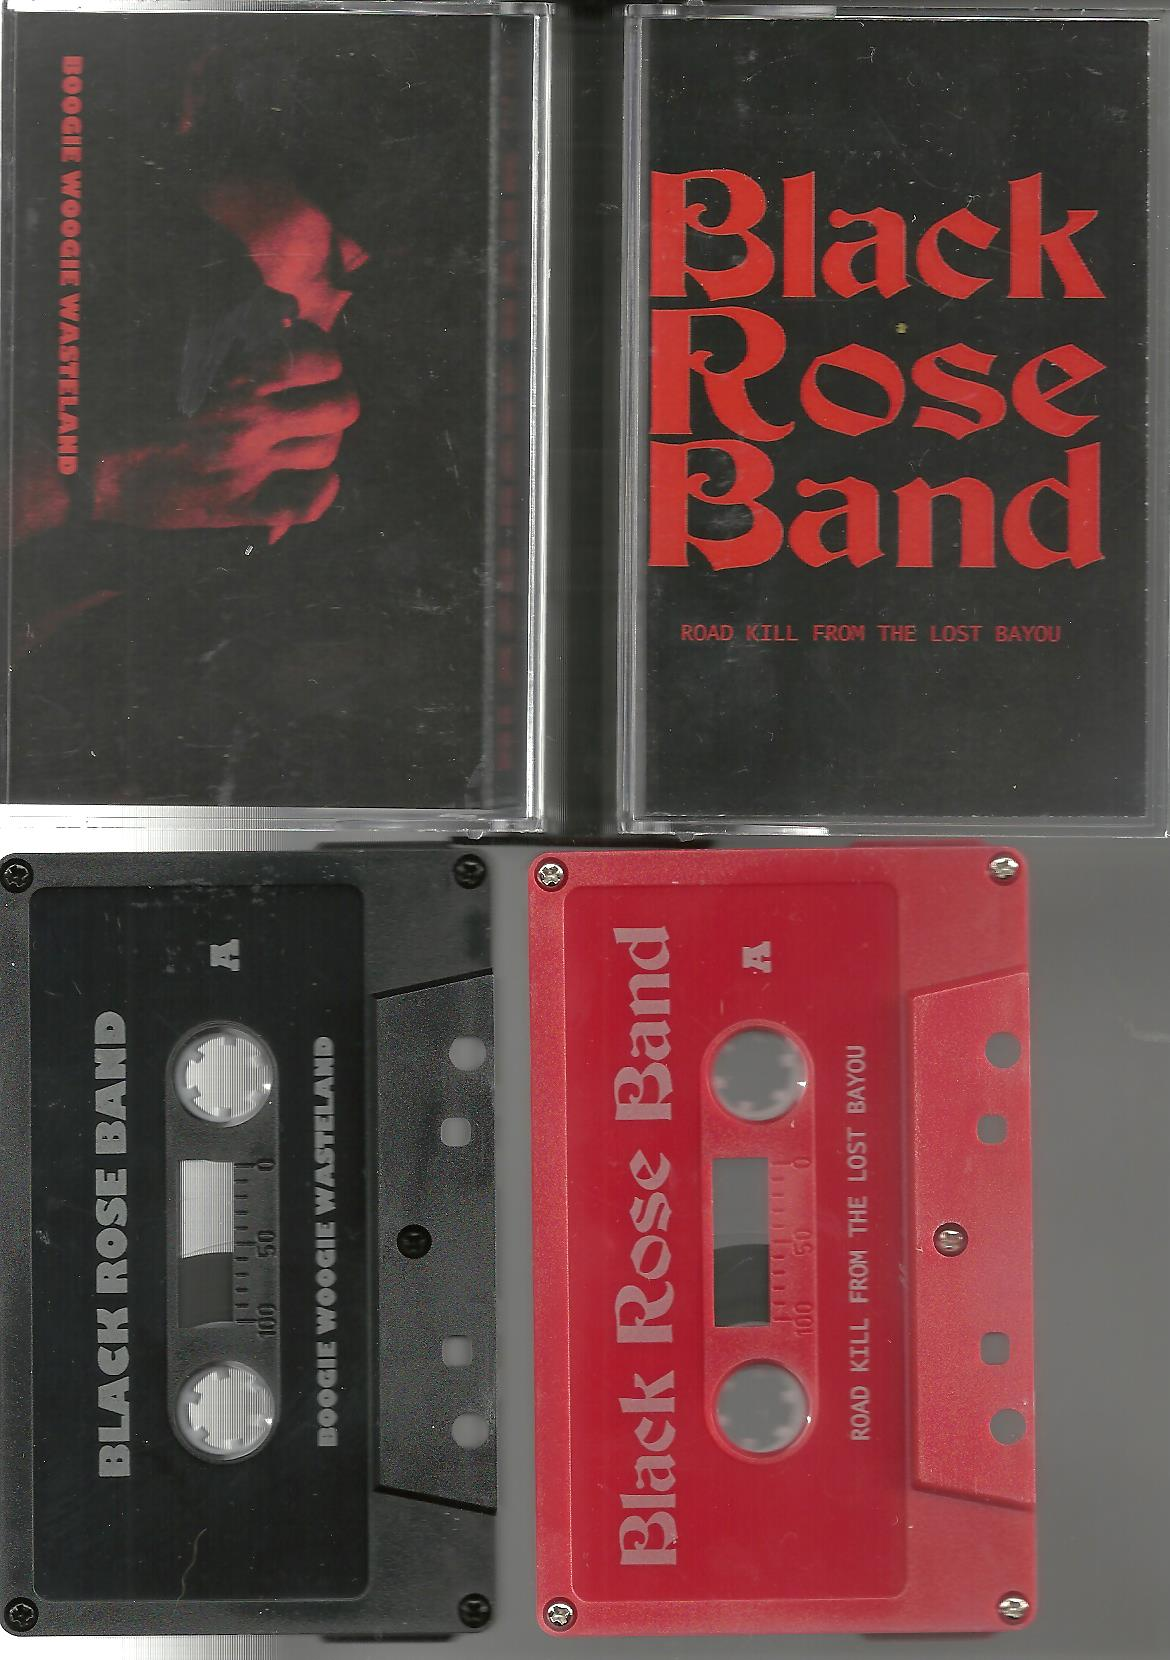 Black Rose Band dbl cassette (No Label)